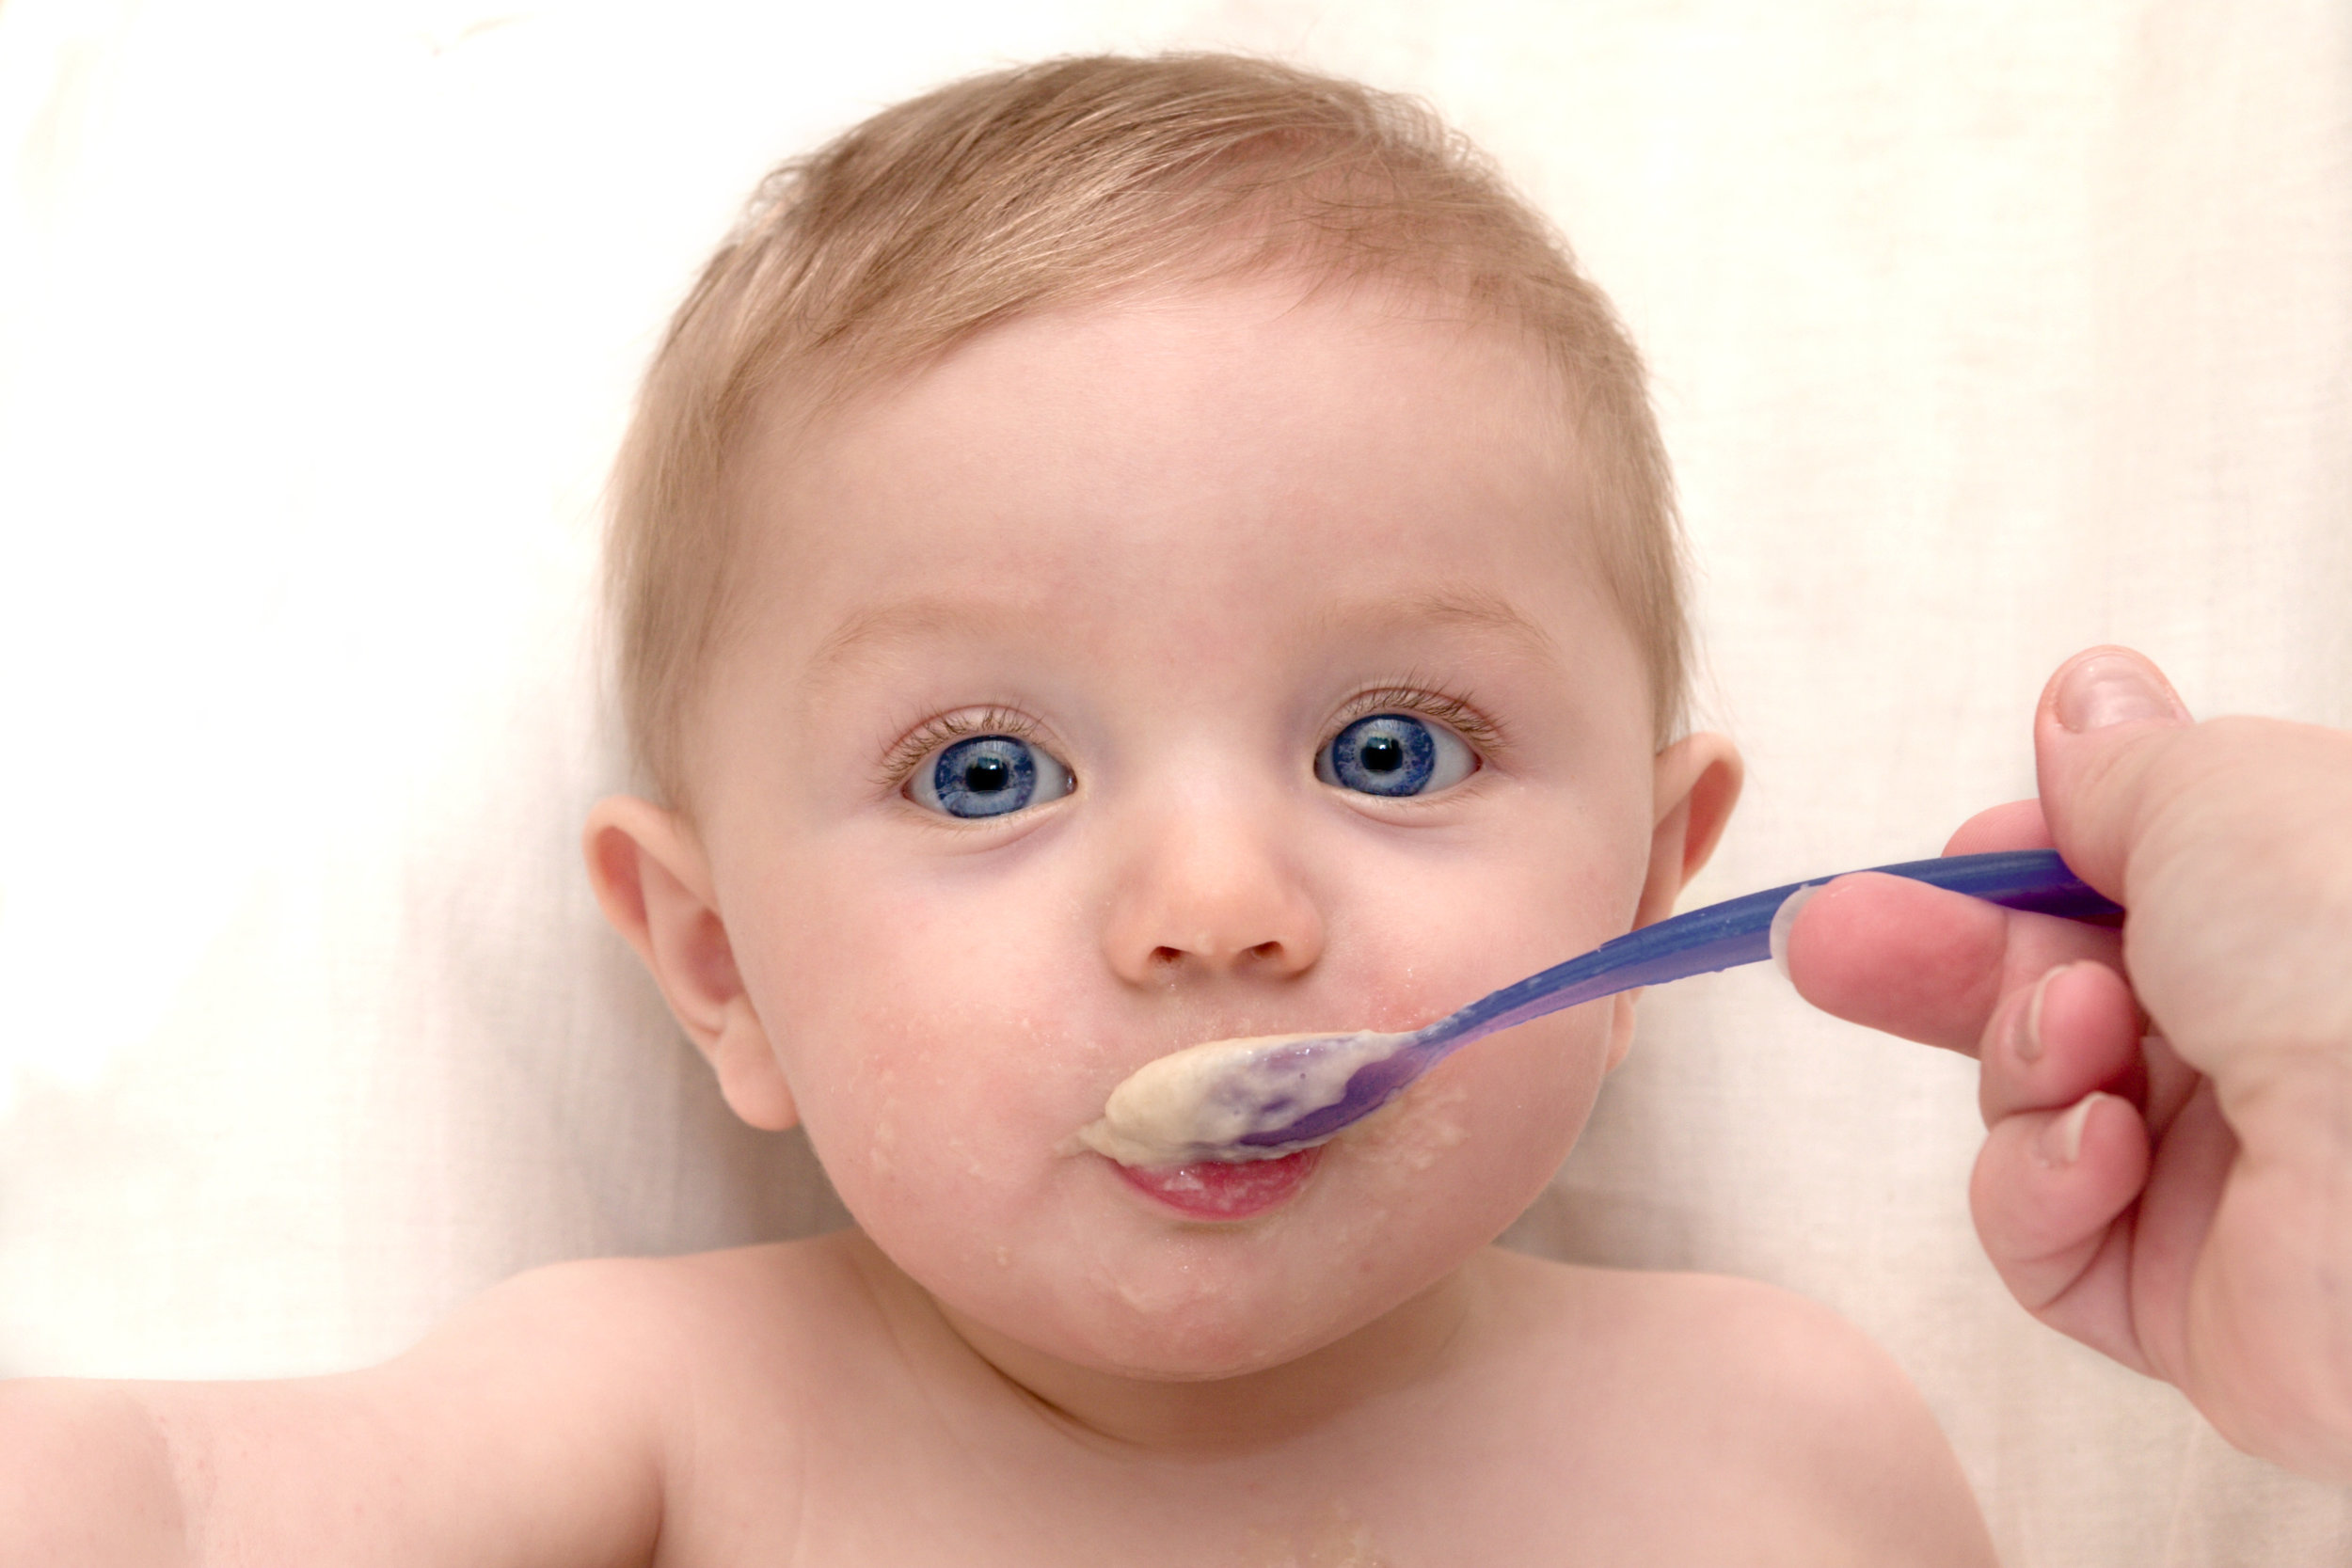 A feeding disorder is characterized by difficulties with eating or drinking that may affect weight or nutrition. This problem may include food or fluid refusal or selectivity. Some children may be dependent on tube feedings or bottle feedings to grow.  -